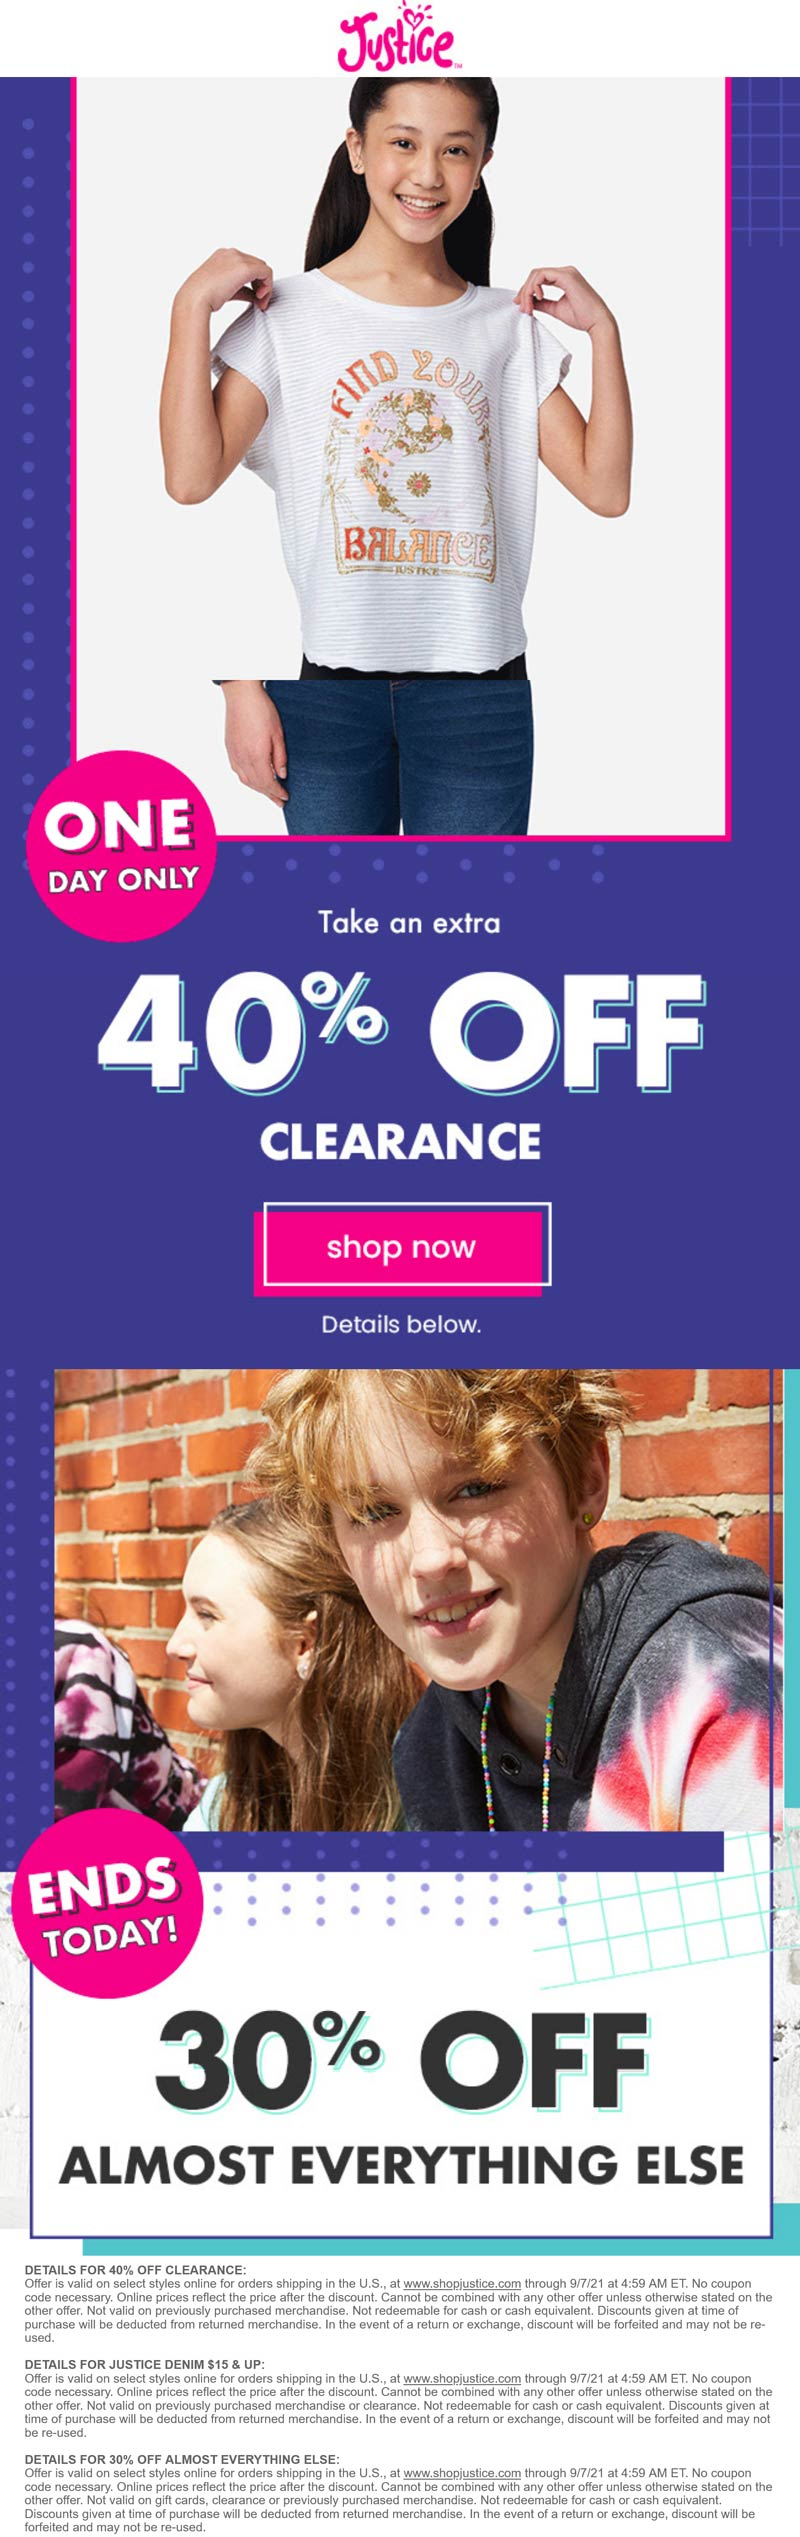 Justice stores Coupon  Extra 40% off clearance & 30% everything else today at Justice #justice